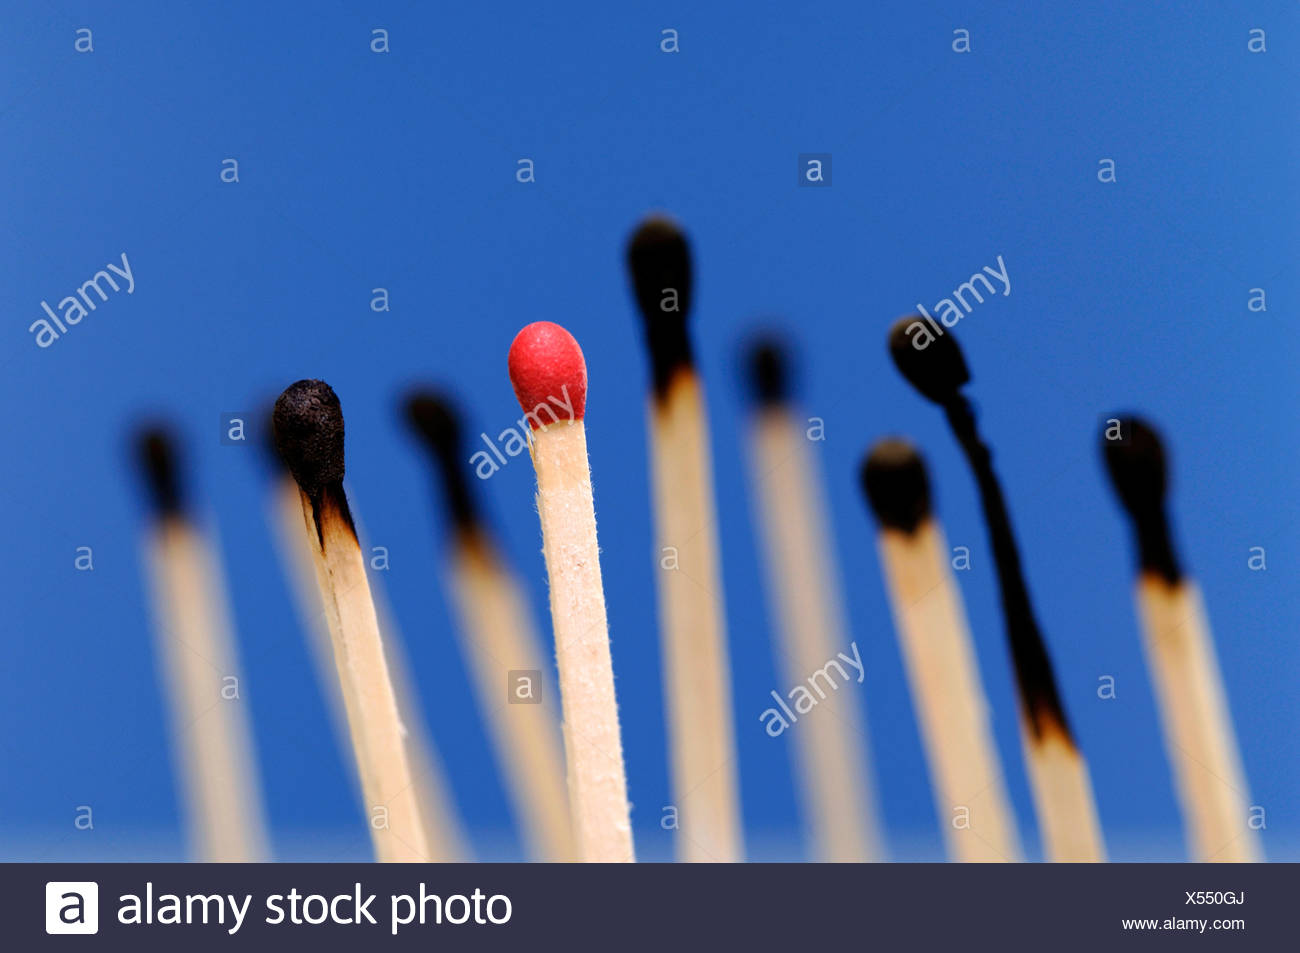 Red match, burned matches in background - Stock Image